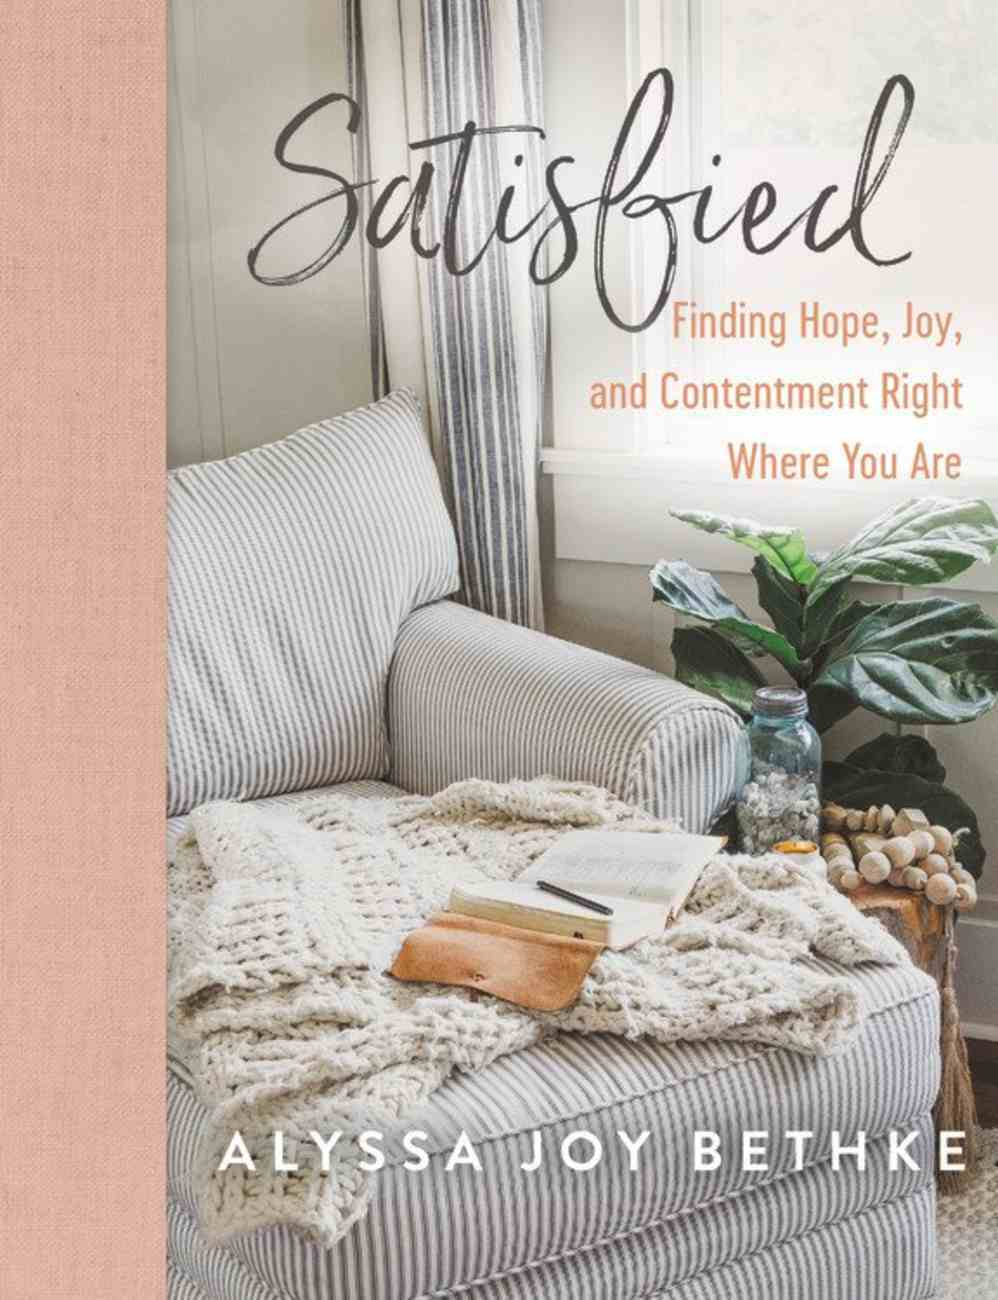 Satisfied: Finding Hope, Joy, and Contentment Right Where You Are Hardback